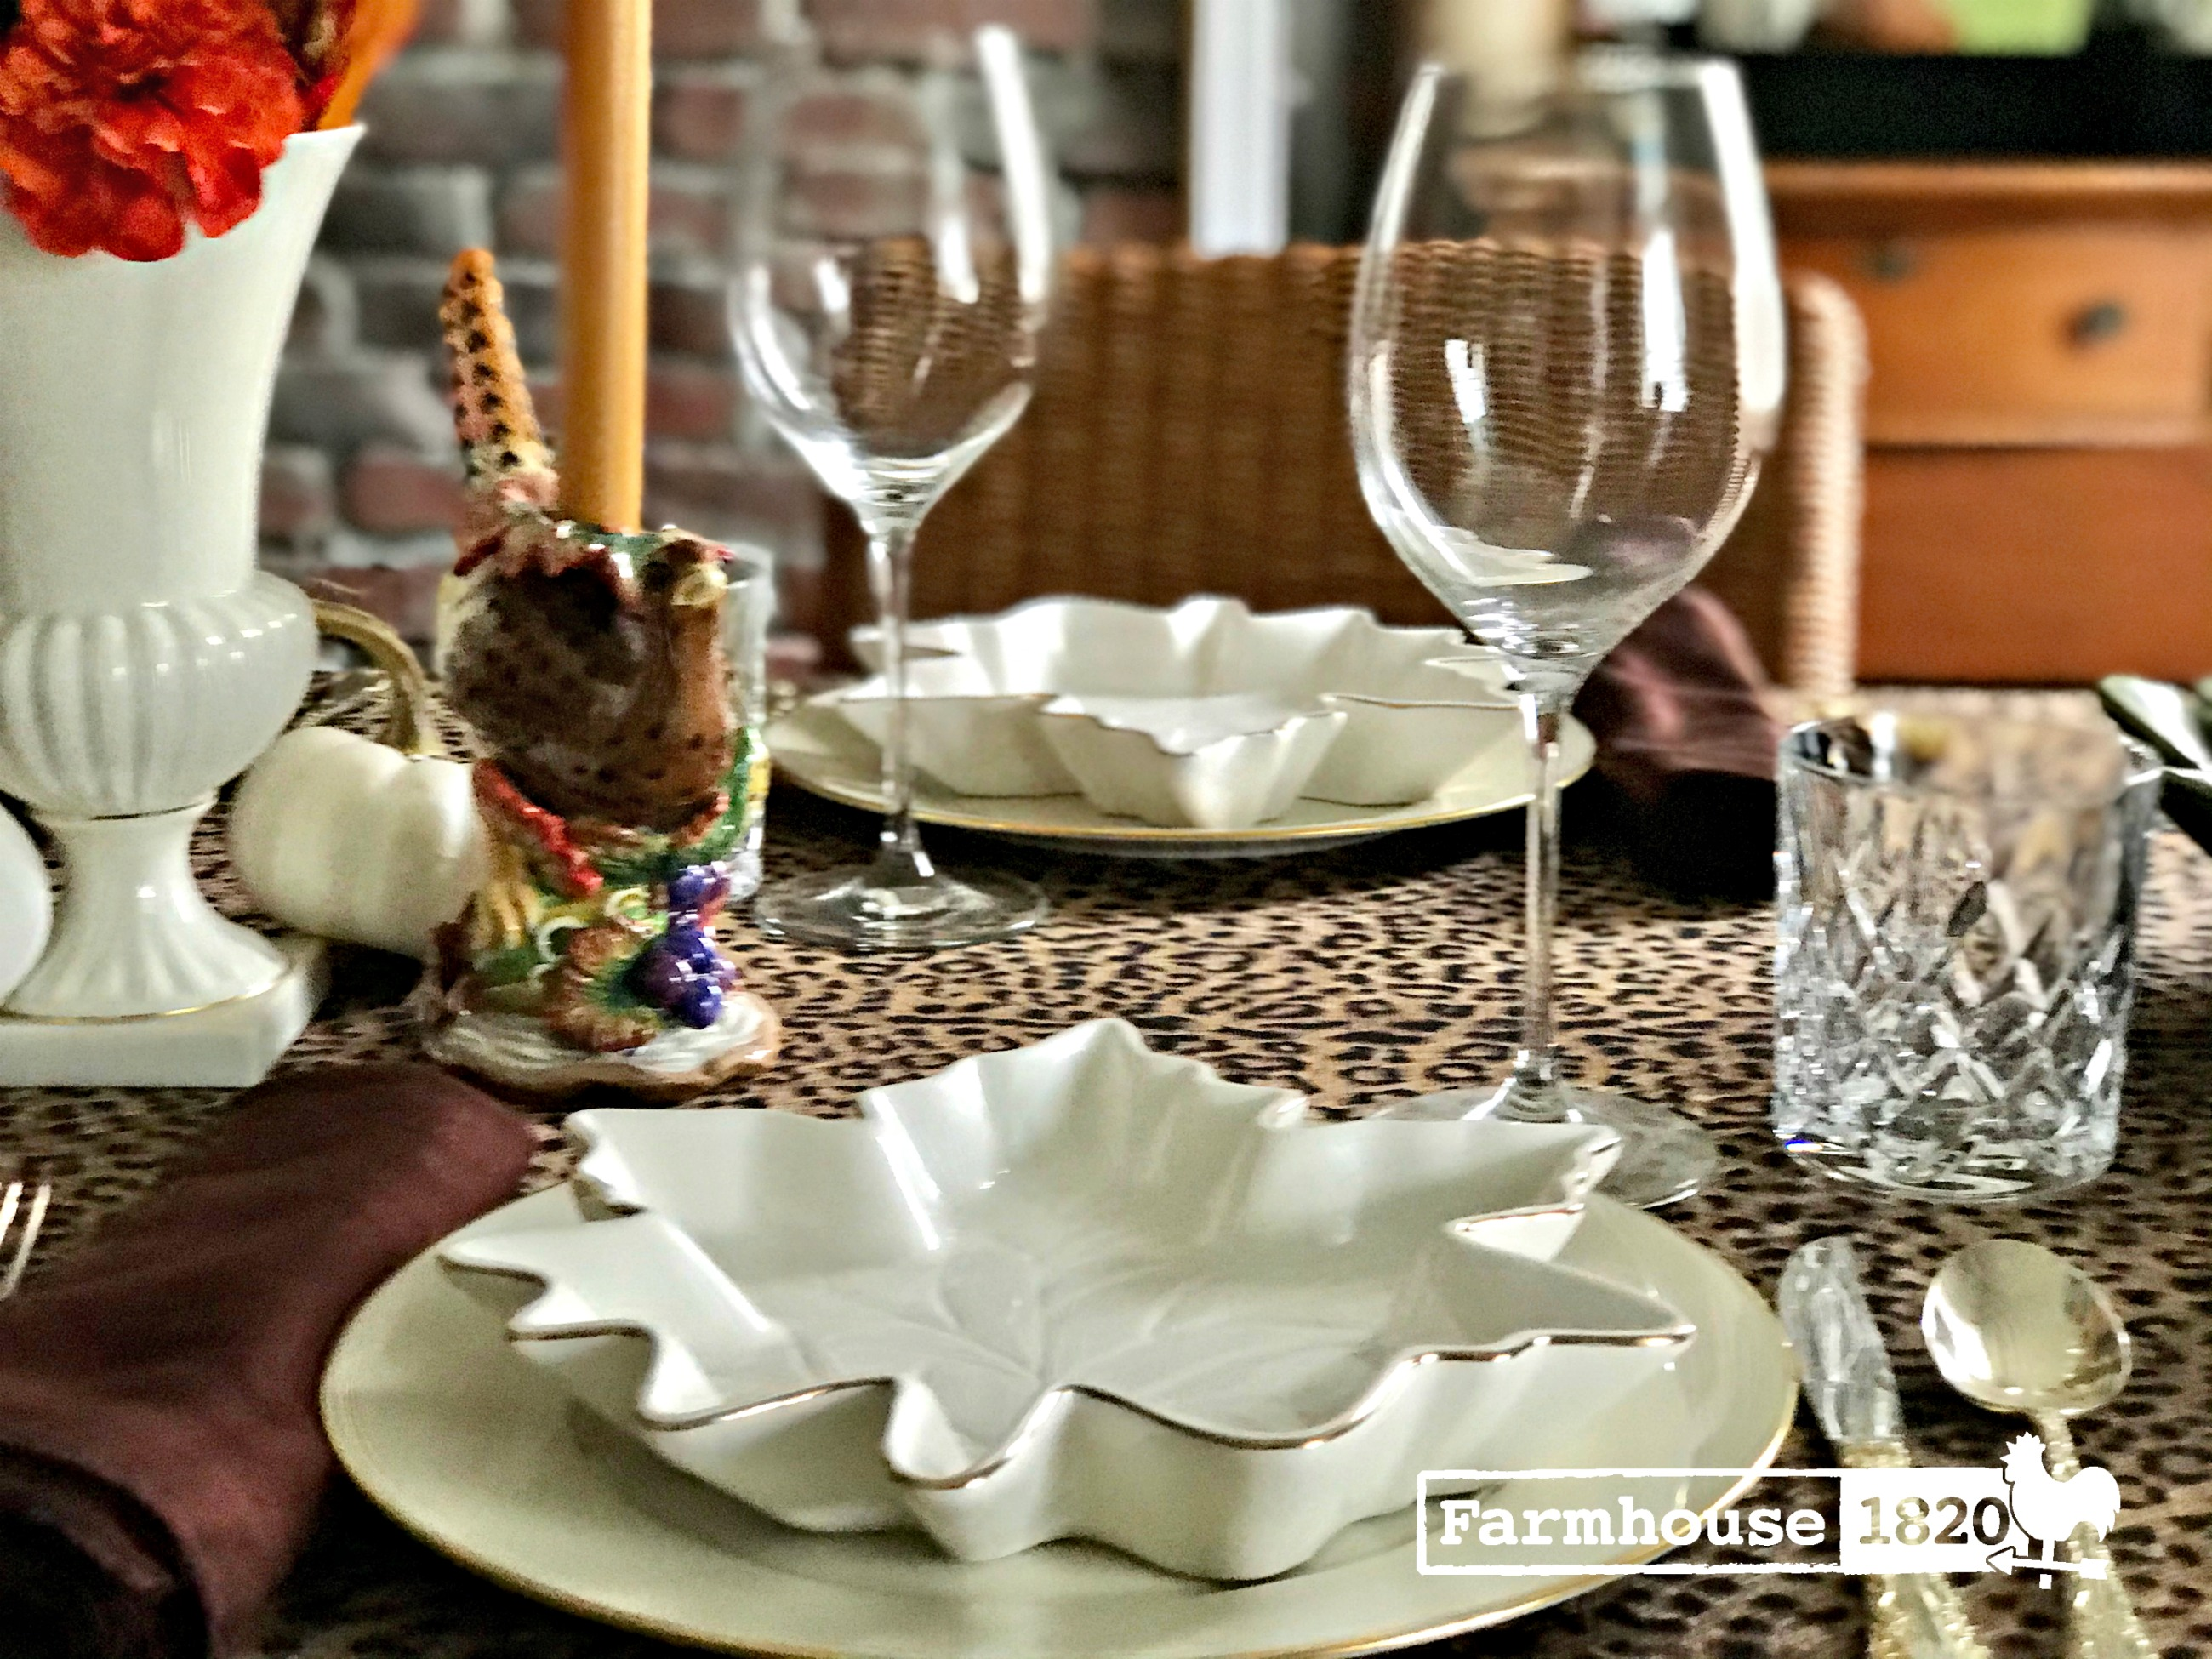 Thanksgiving table - a beautiful display of a modern mix Thanksgiving tablesetting